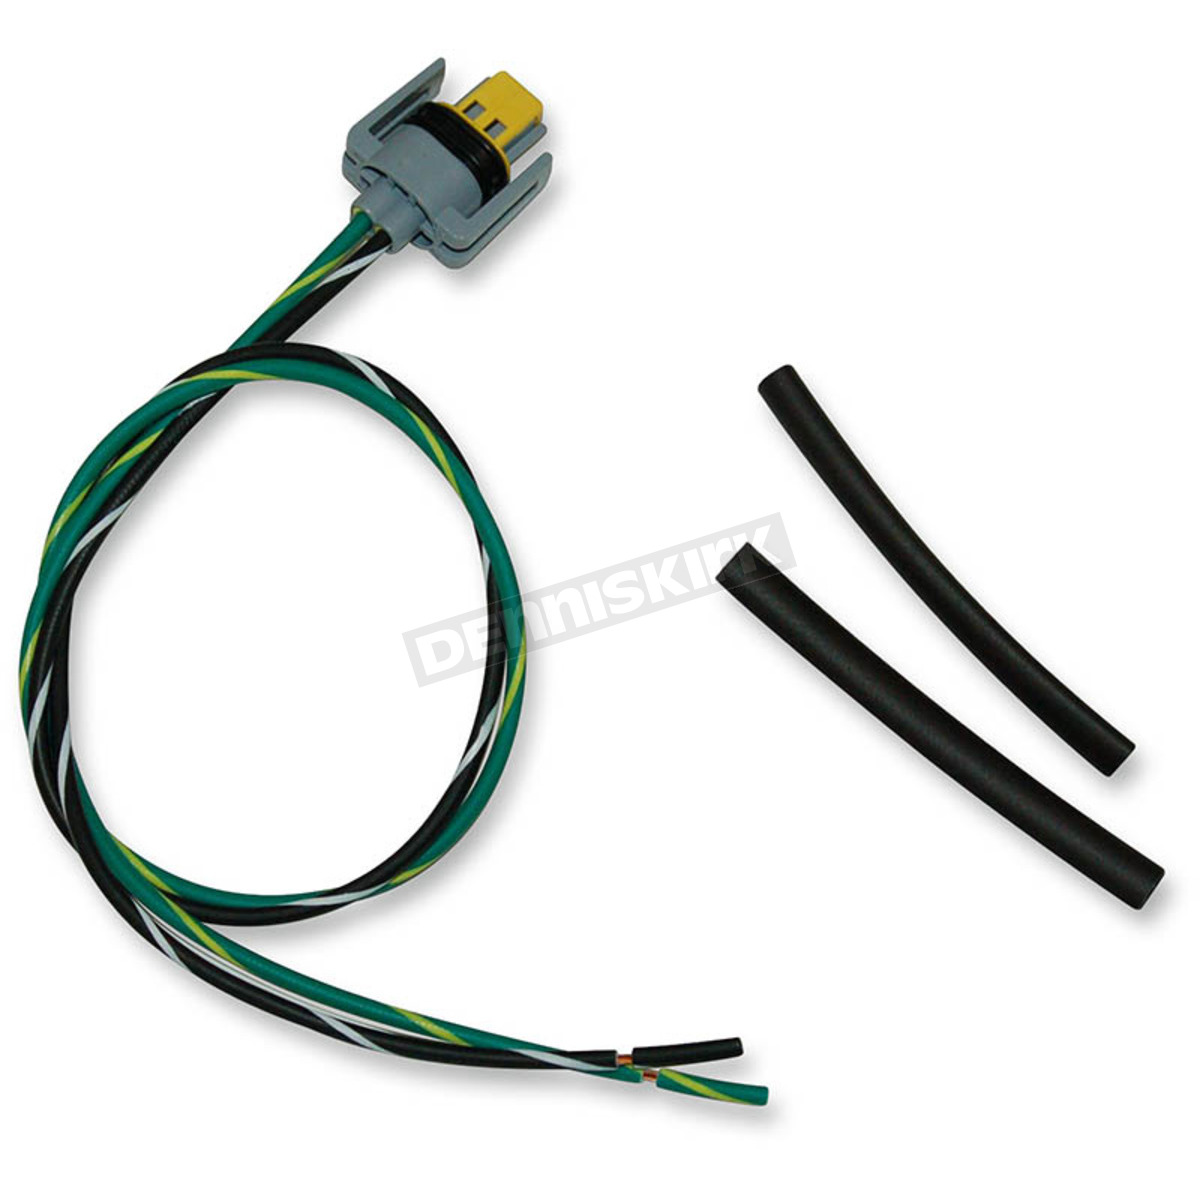 Wire Terminal 2 Wire Female Connector fits Harley-Davidson,by Delphi